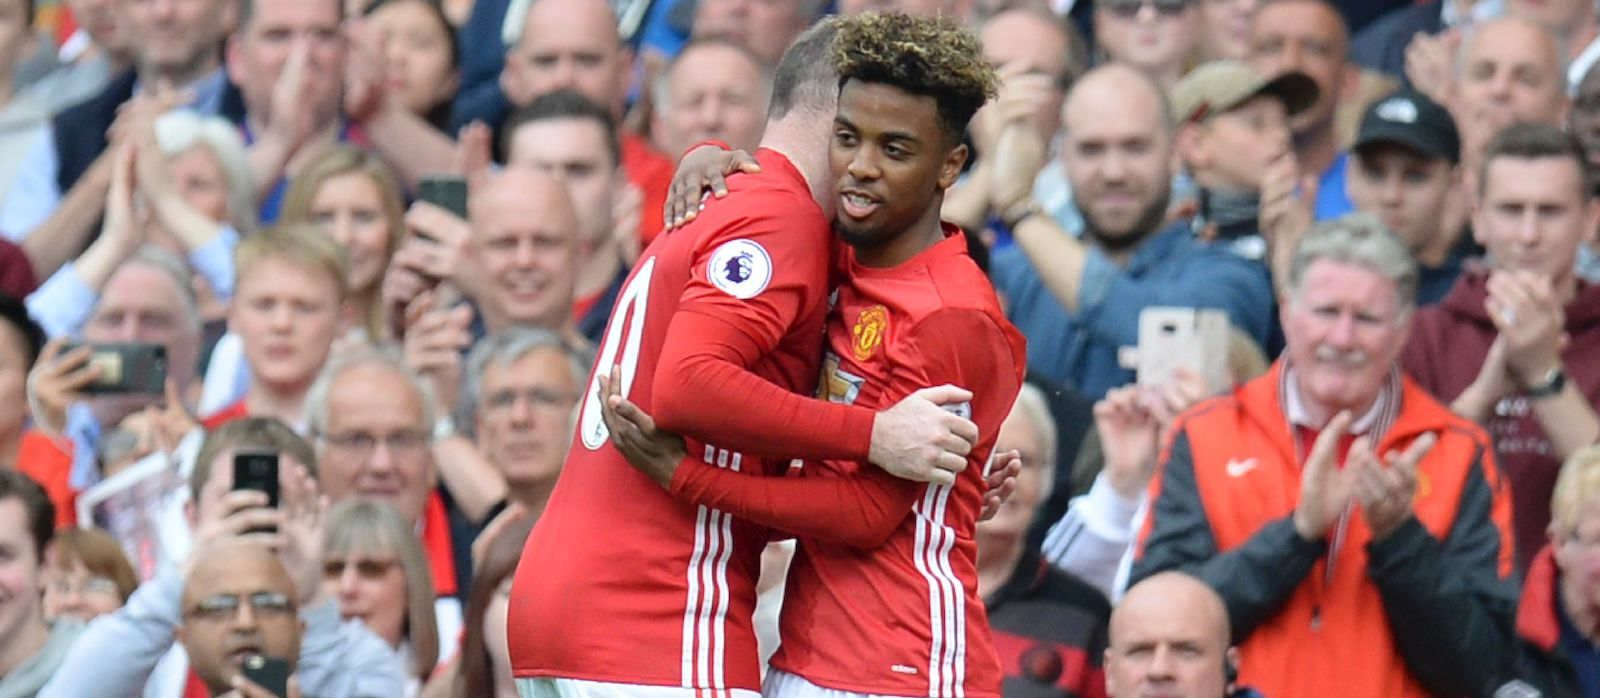 Manchester United confident of avoiding Paul Pogba situation as Angel Gomes contract negotiations stall